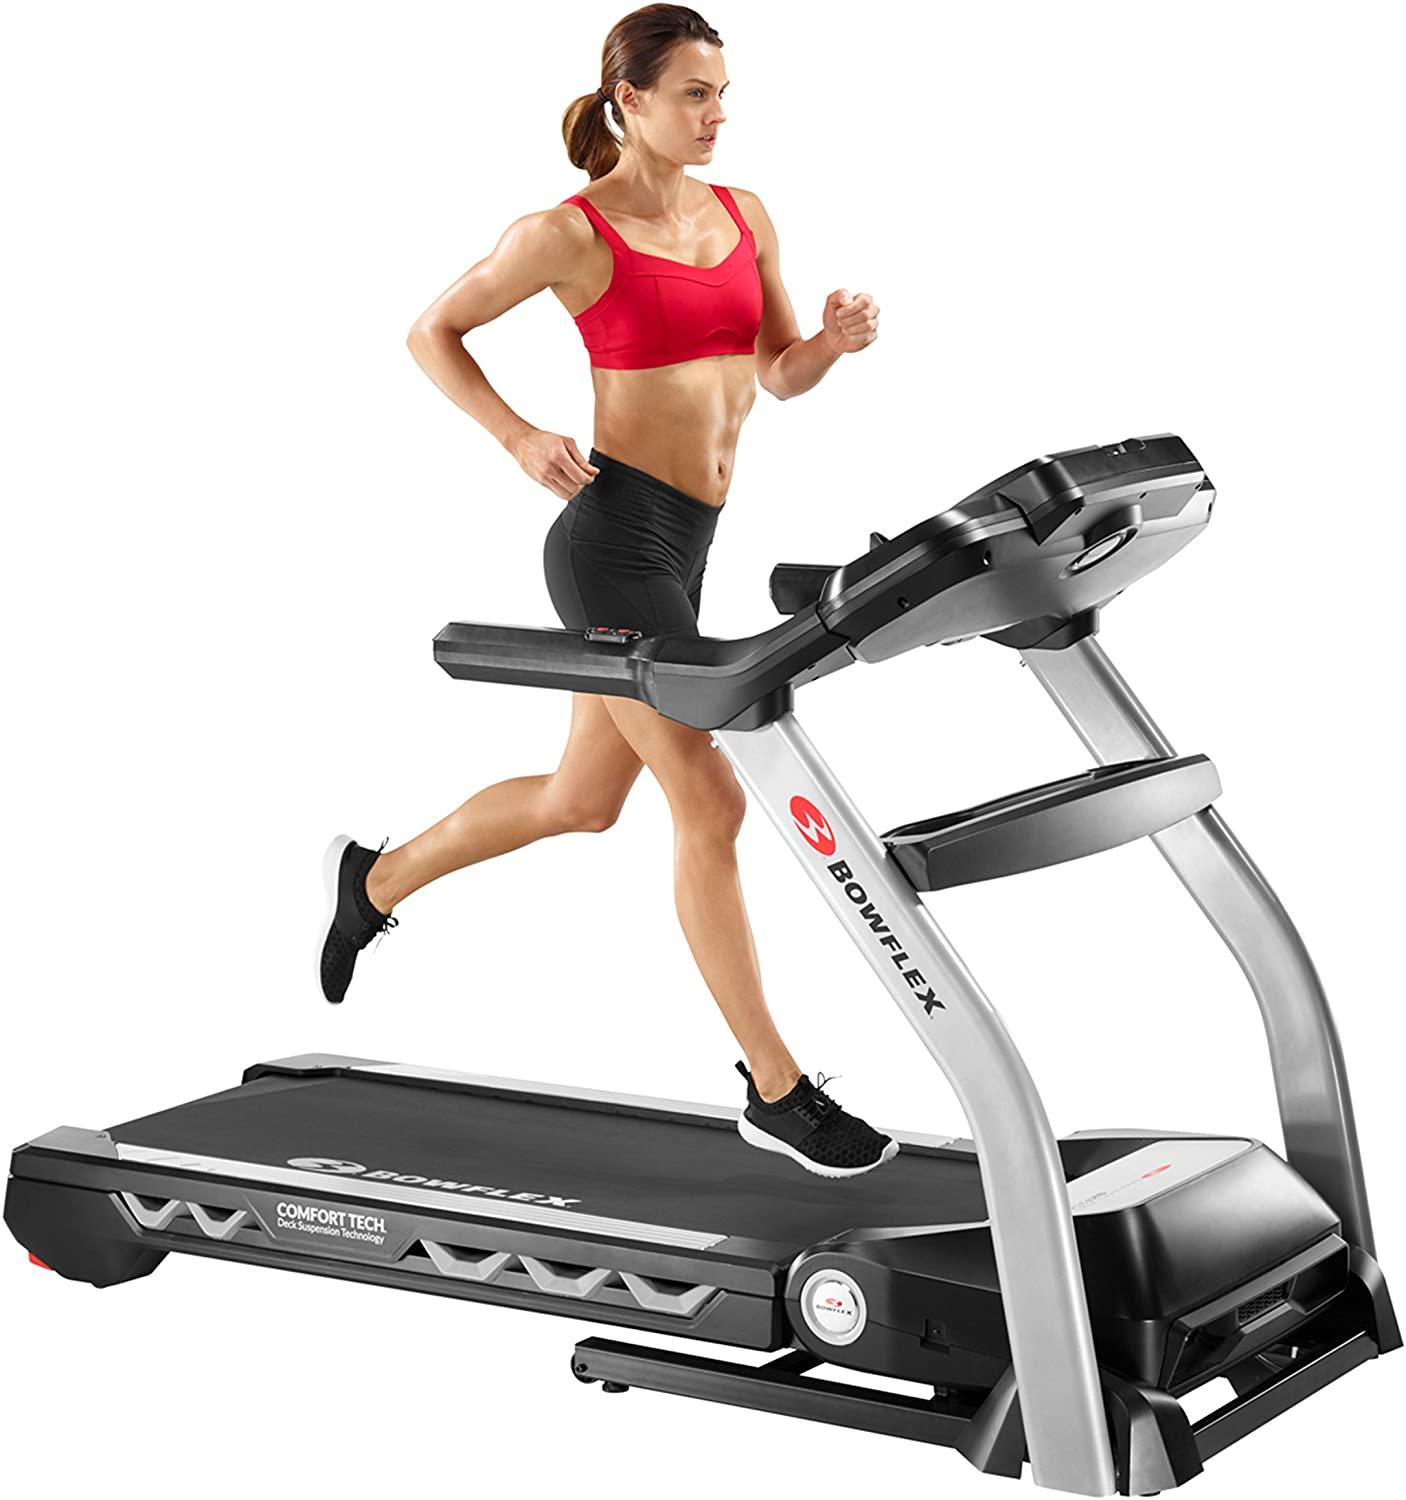 6 Best Treadmill 400 lb Weight Capacity: How To Find One